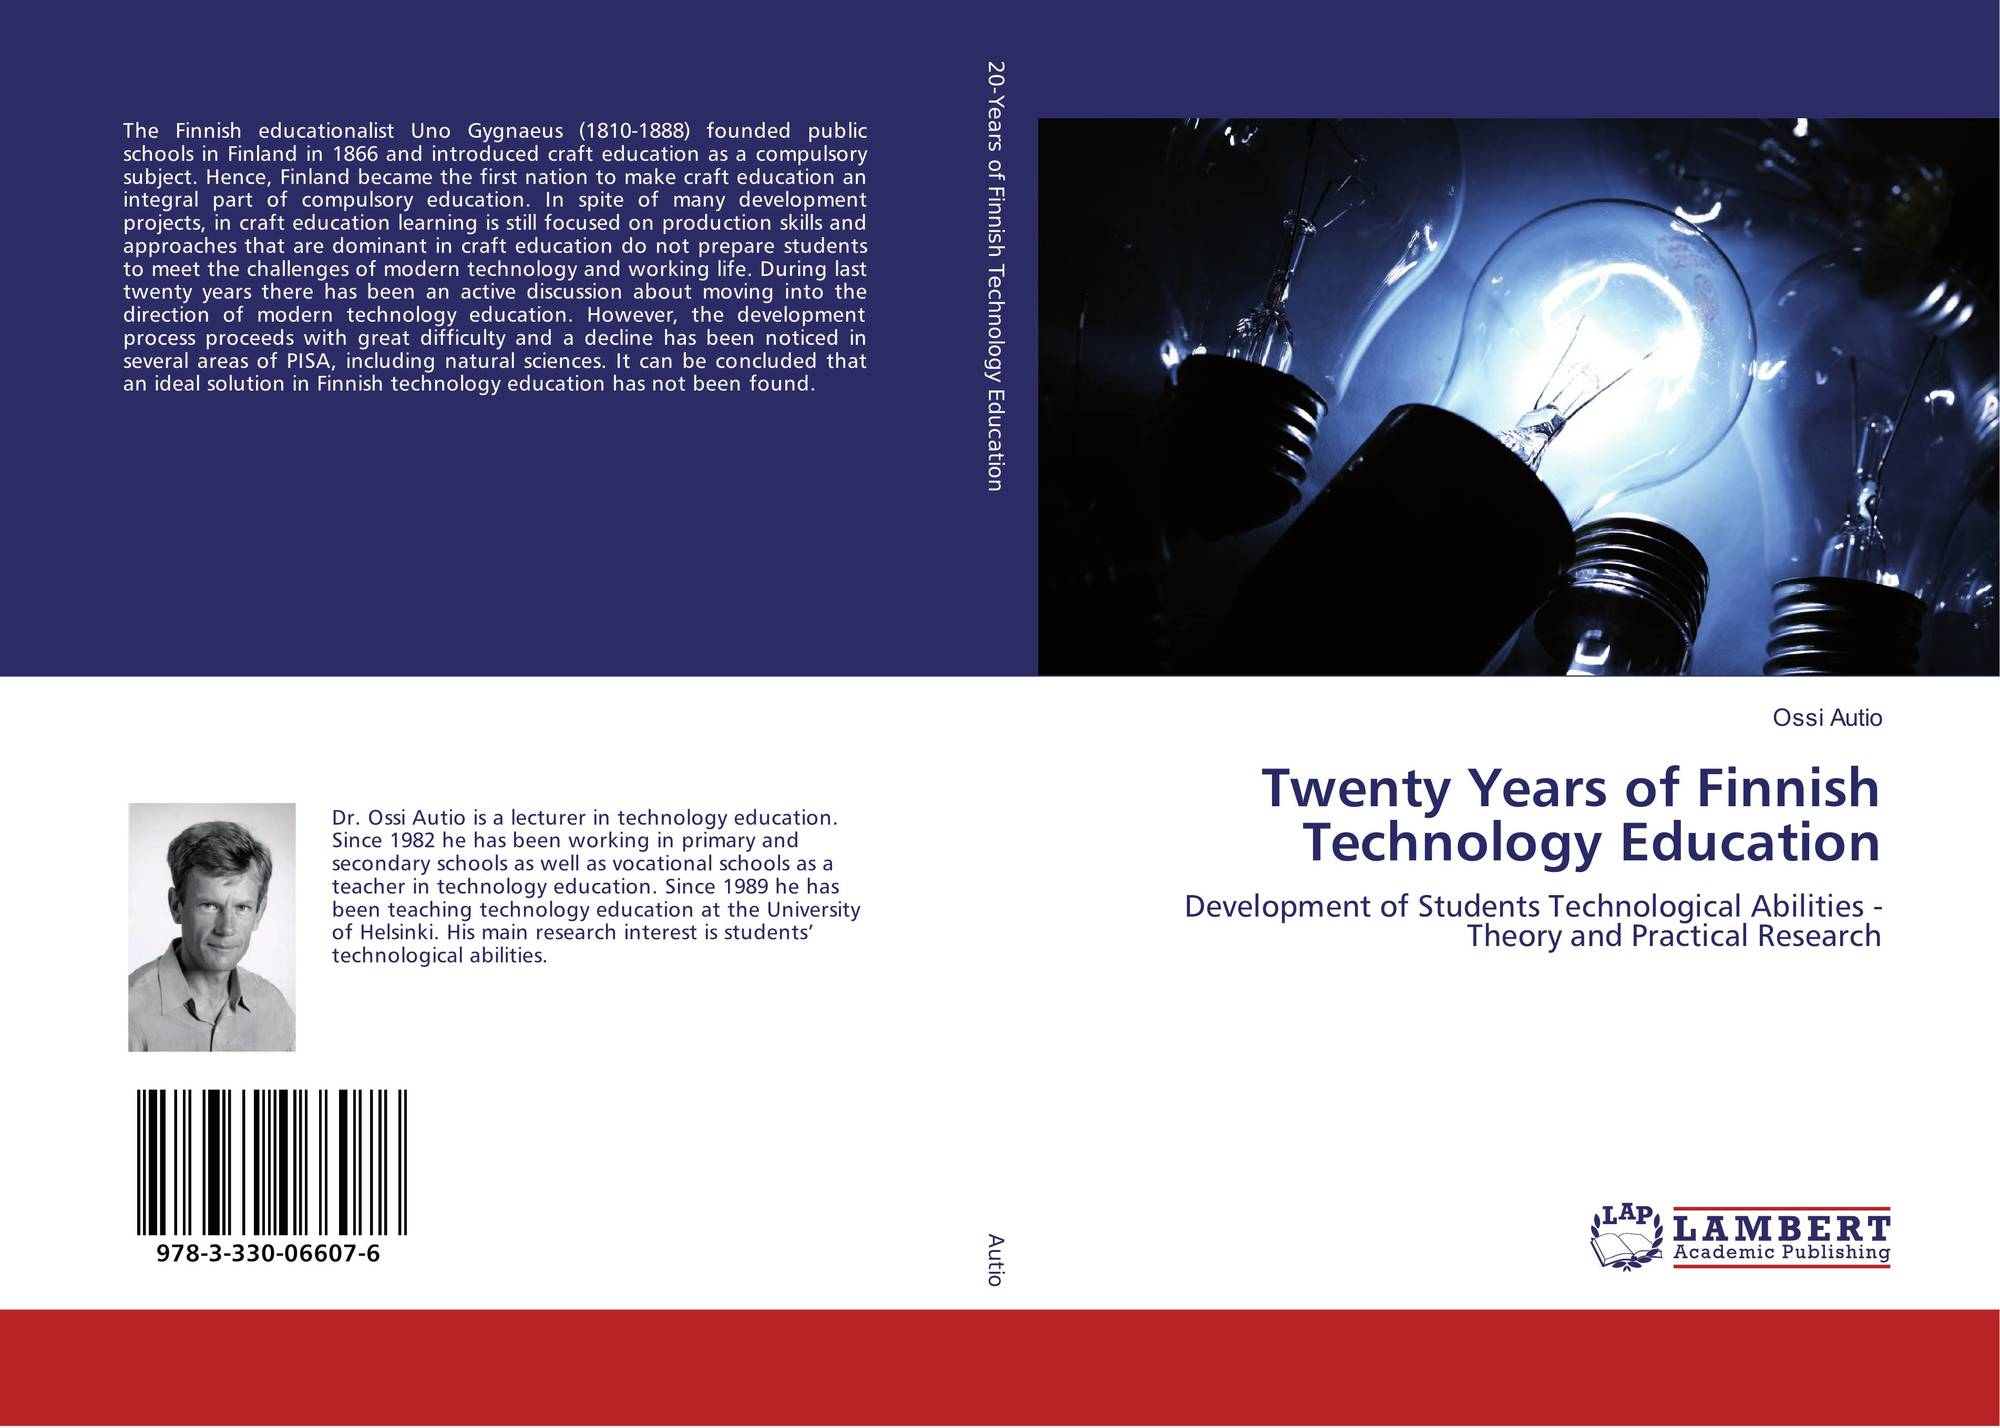 educational technology theories and theorists essay